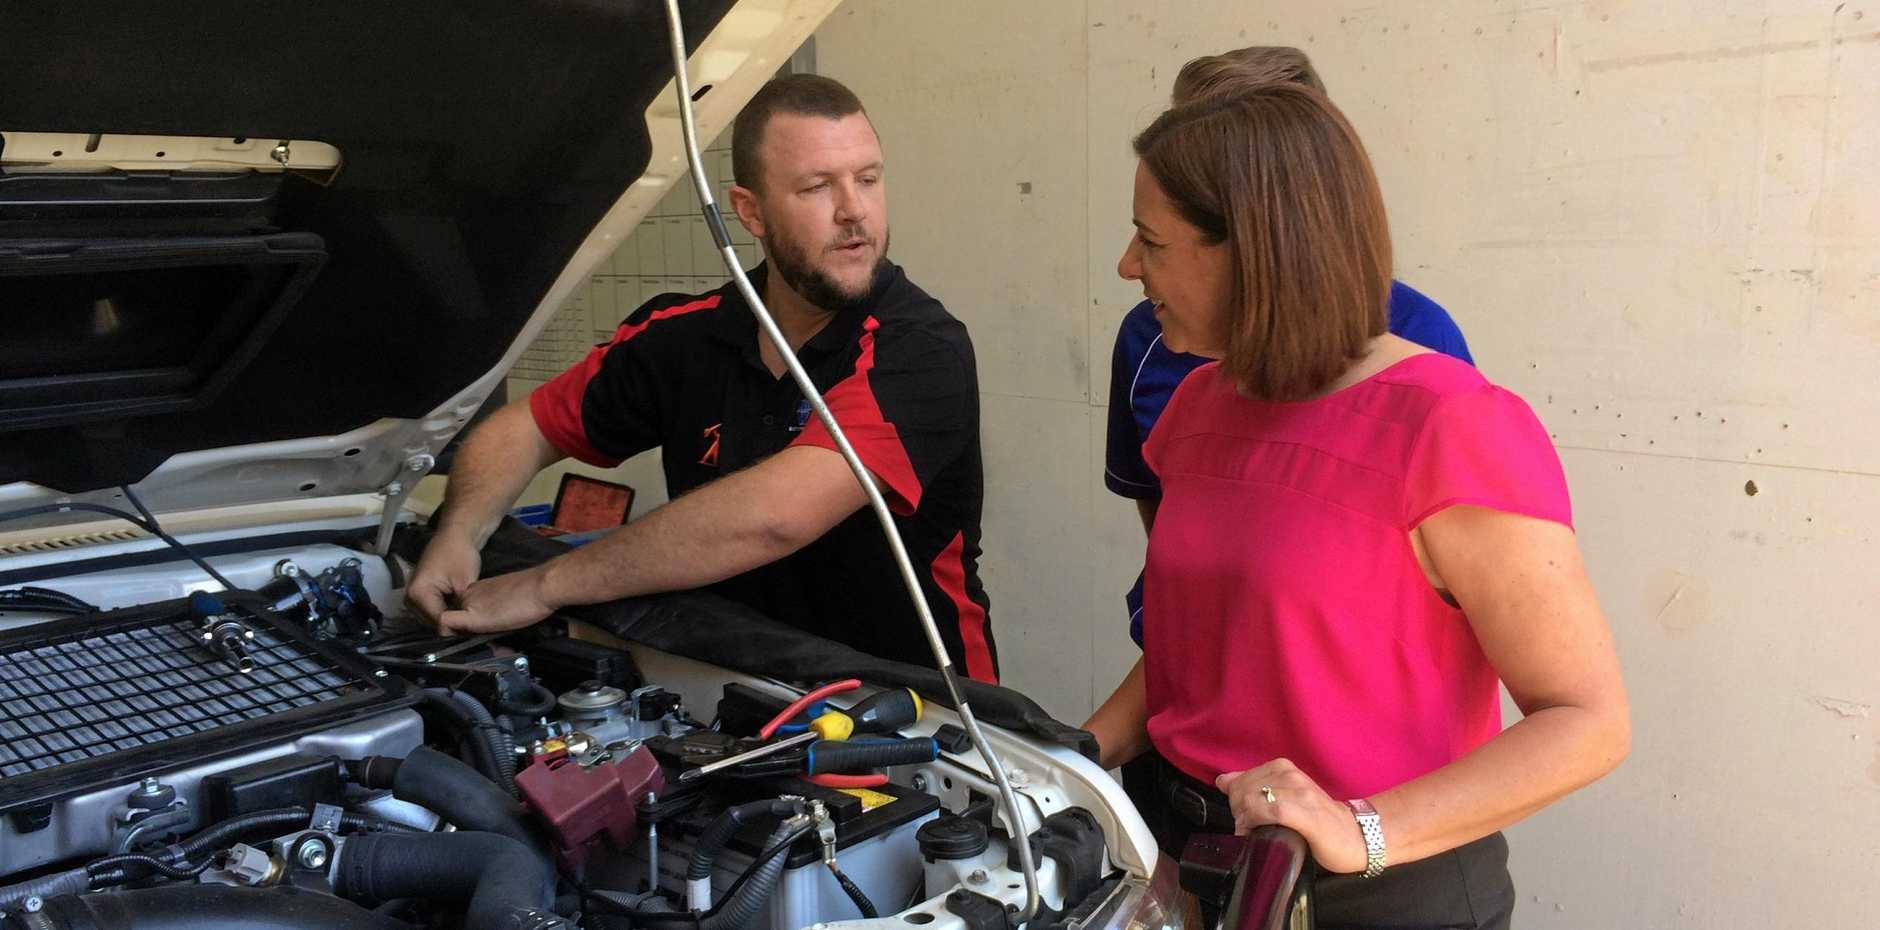 State Opposition Leader Deb Frecklington speaks with auto-electrician Michael Sugden during a visit of Battery Wise at Warana.